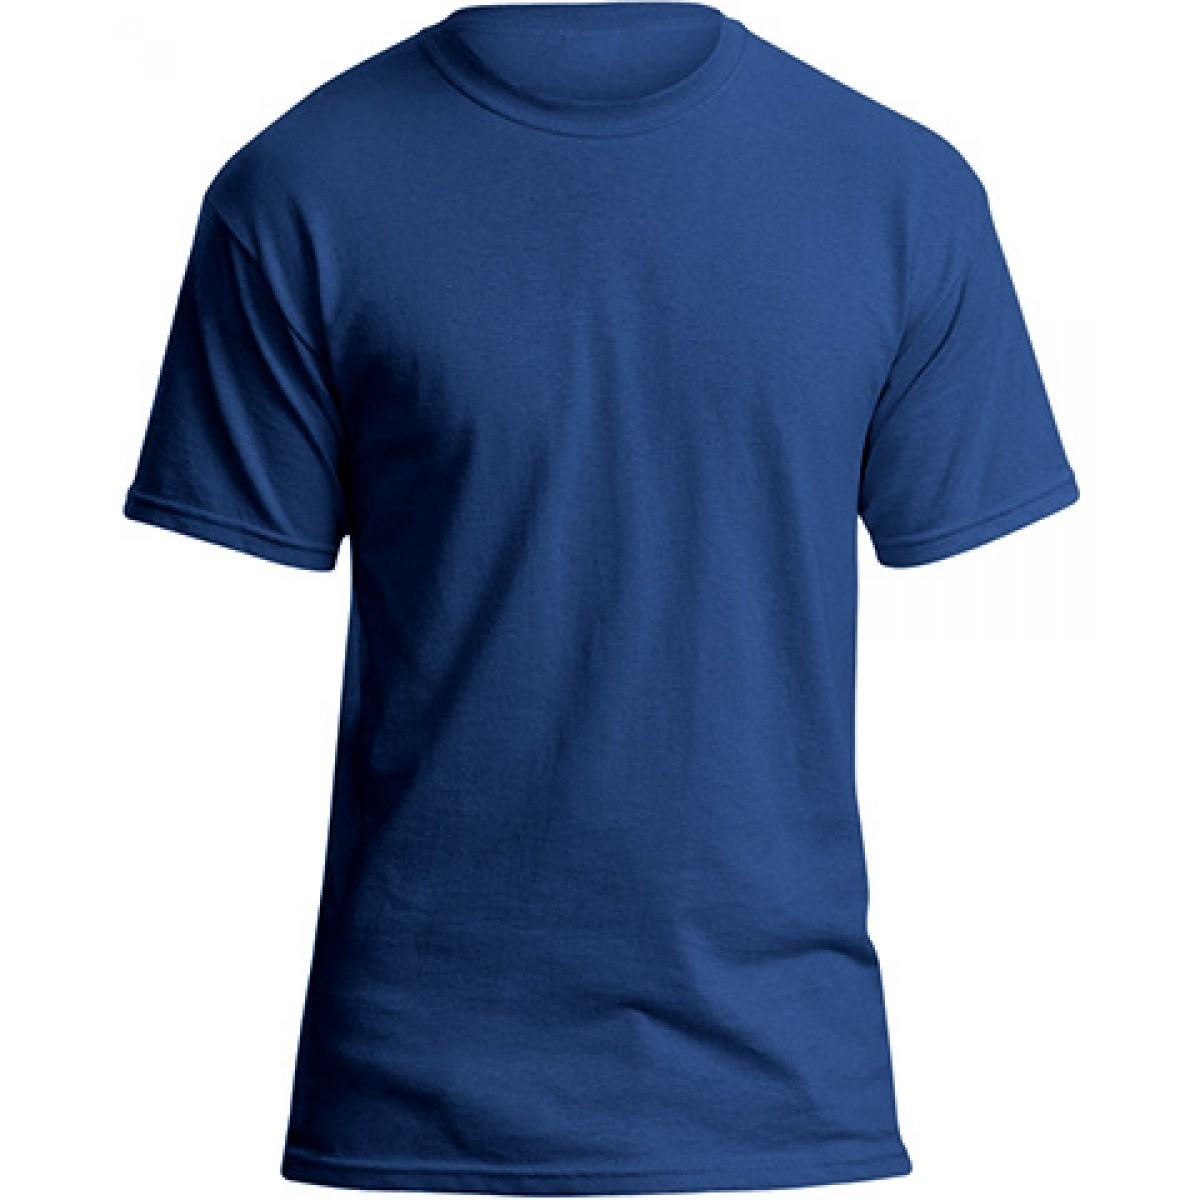 Soft 100% Cotton Competitor T-Shirt